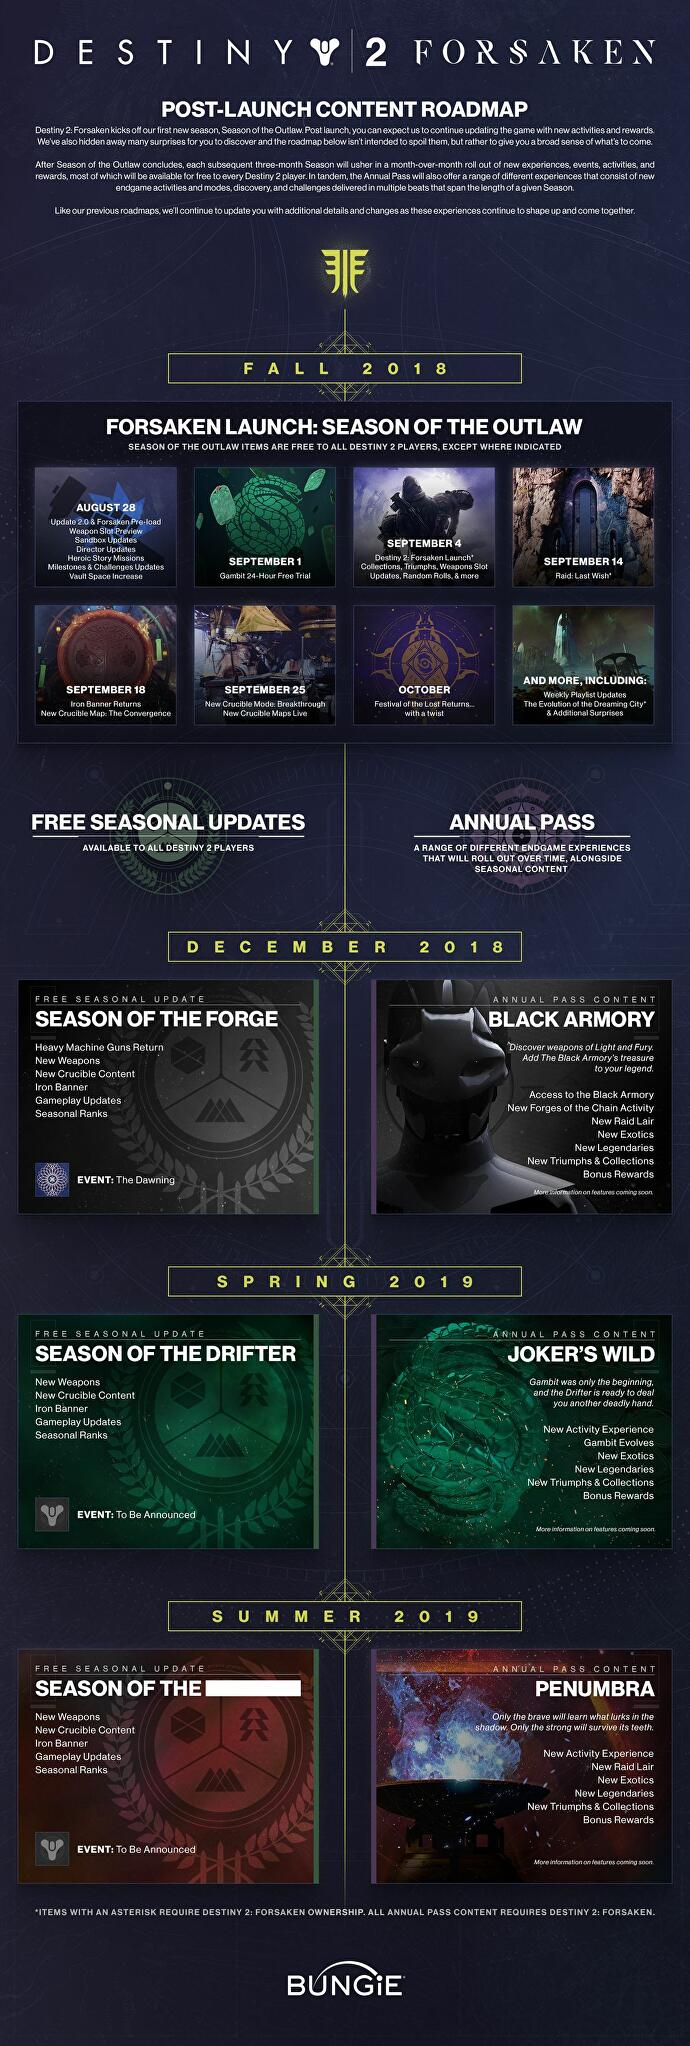 Destiny 2 Forsaken walkthrough and guide to what's new in Year 2